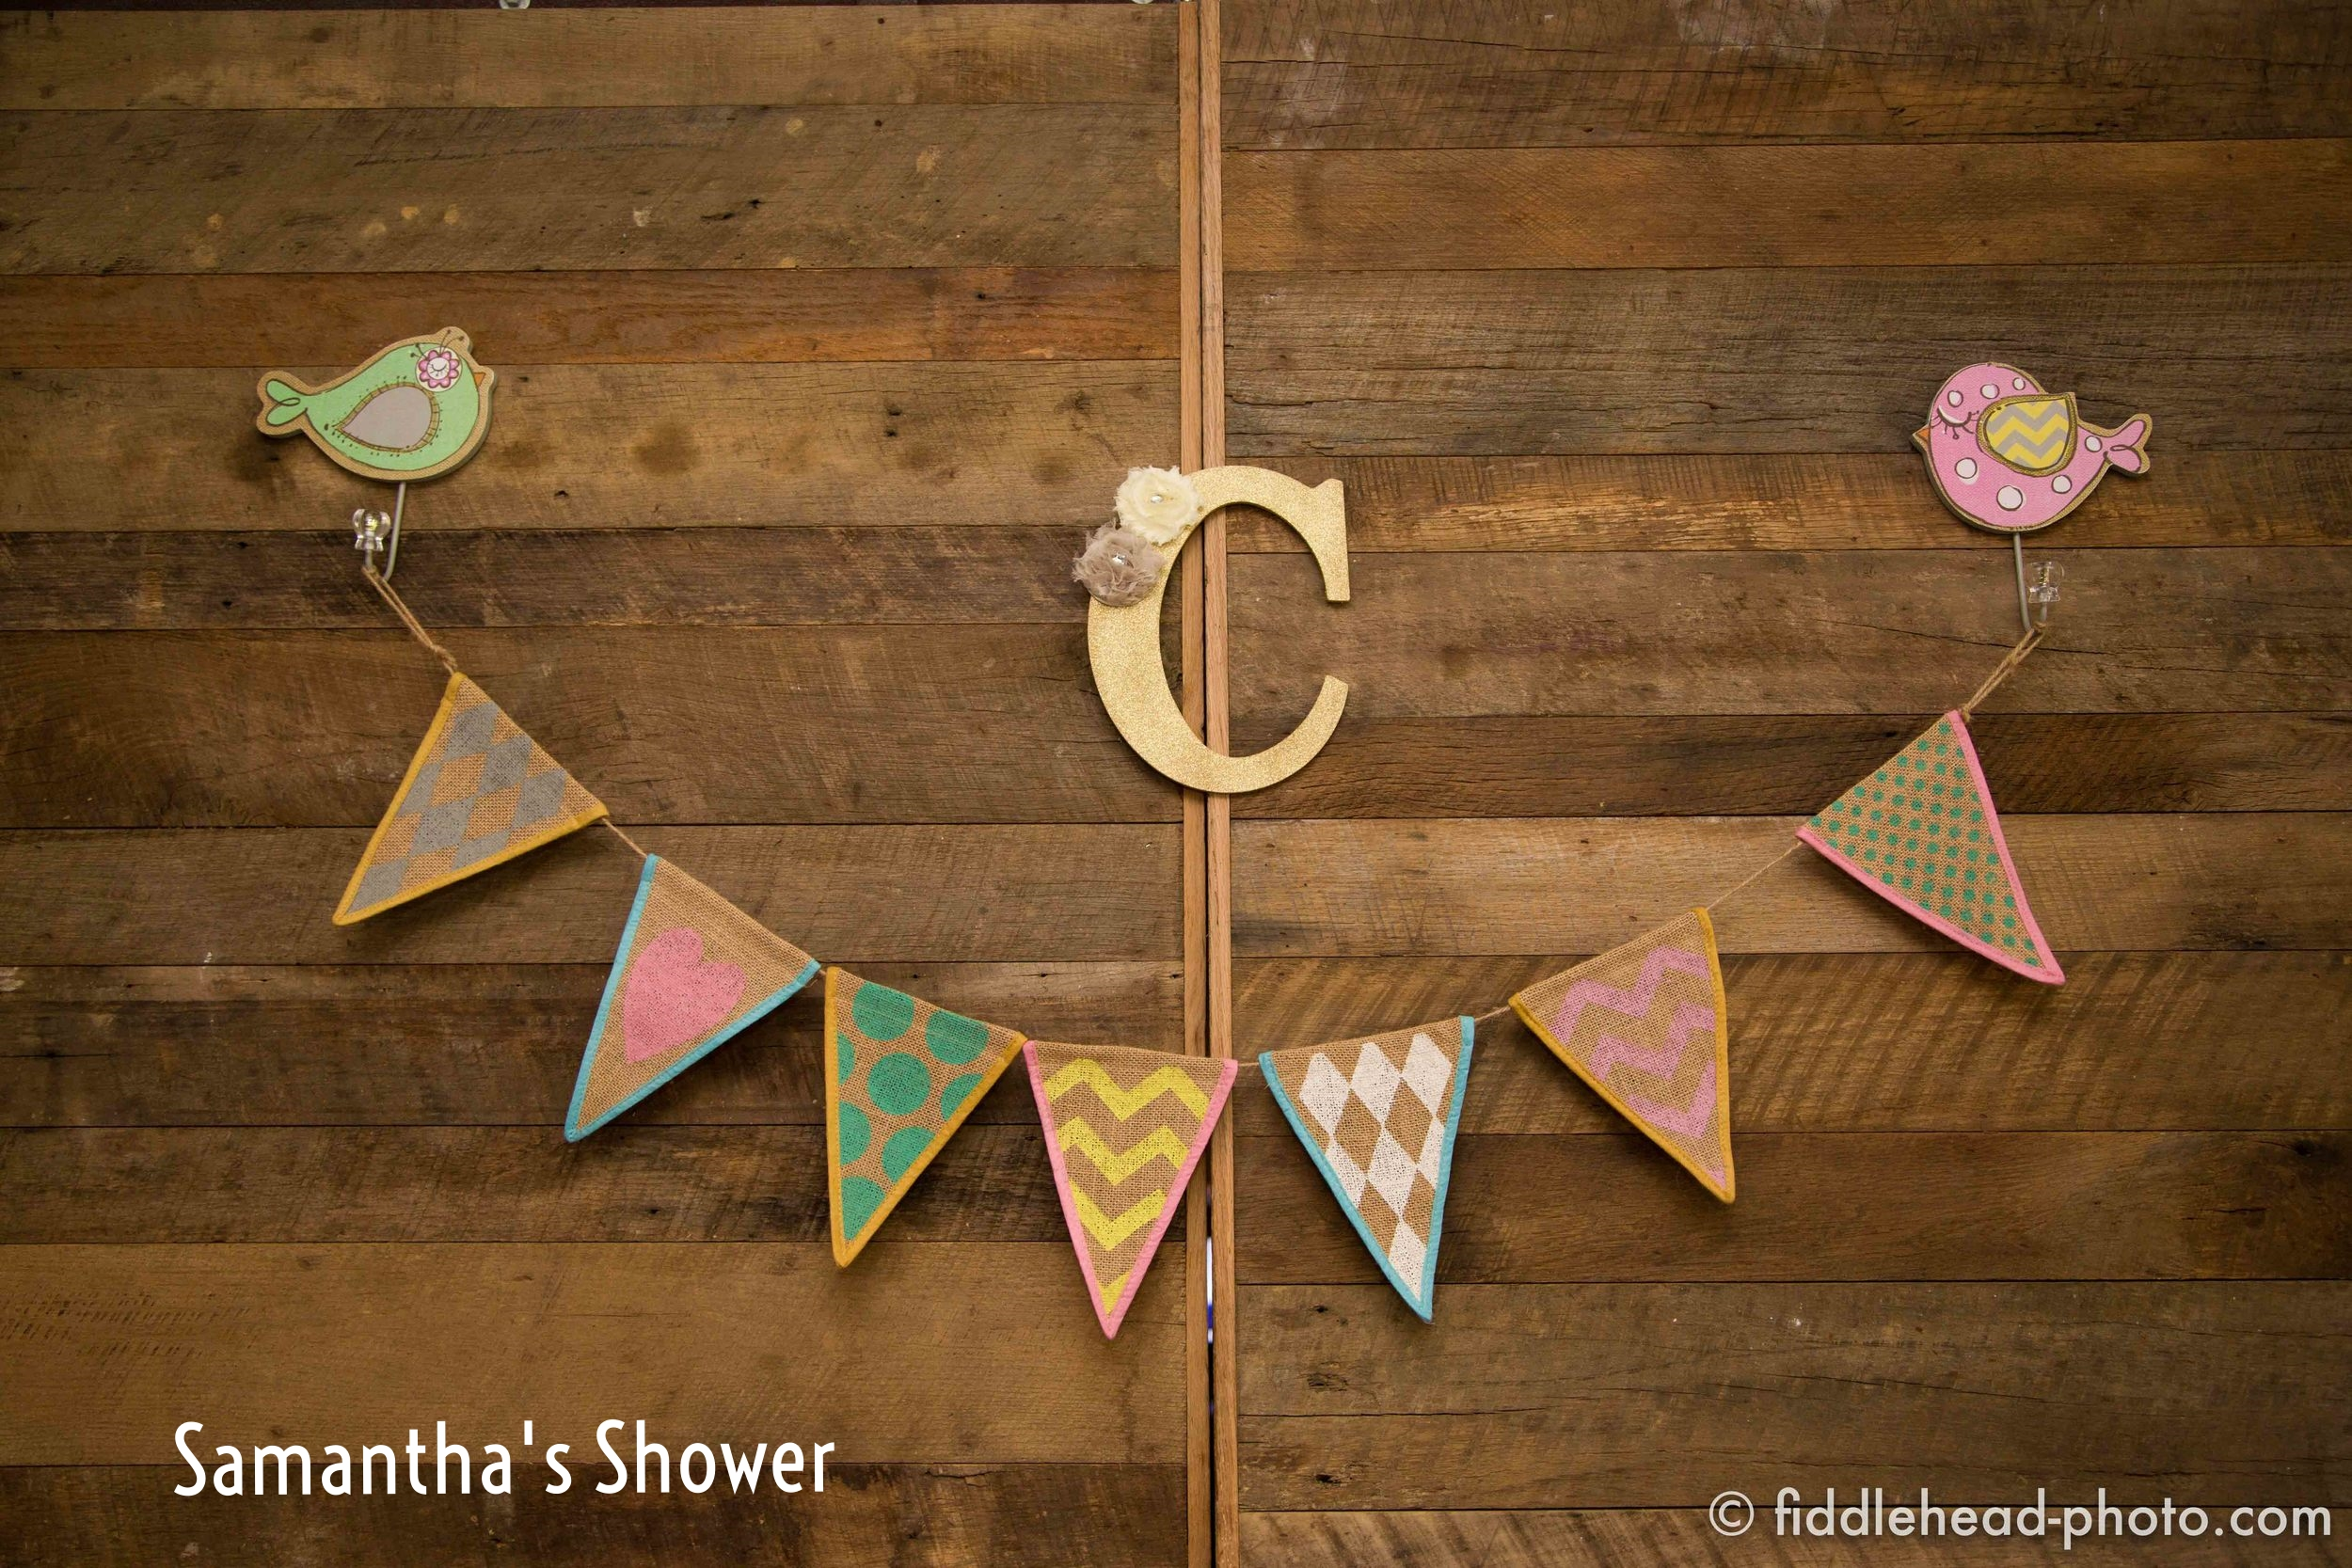 Samantha's Shower